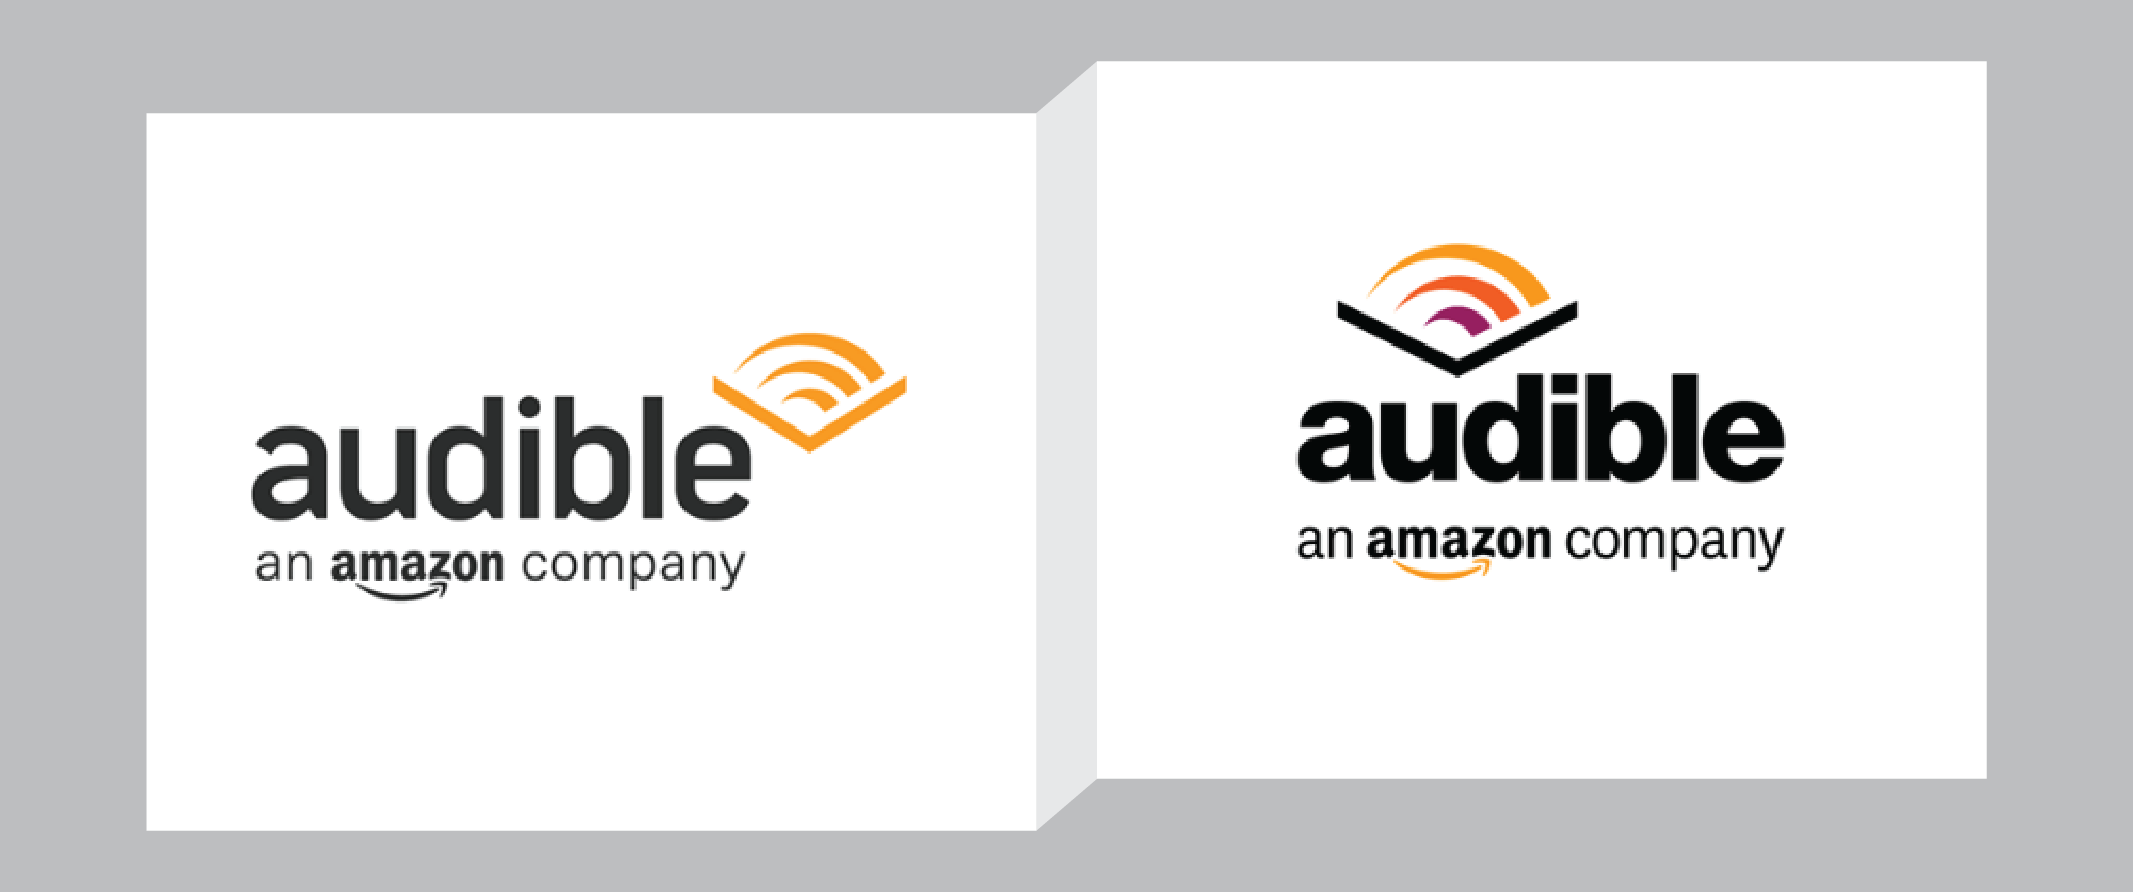 logo cua audible